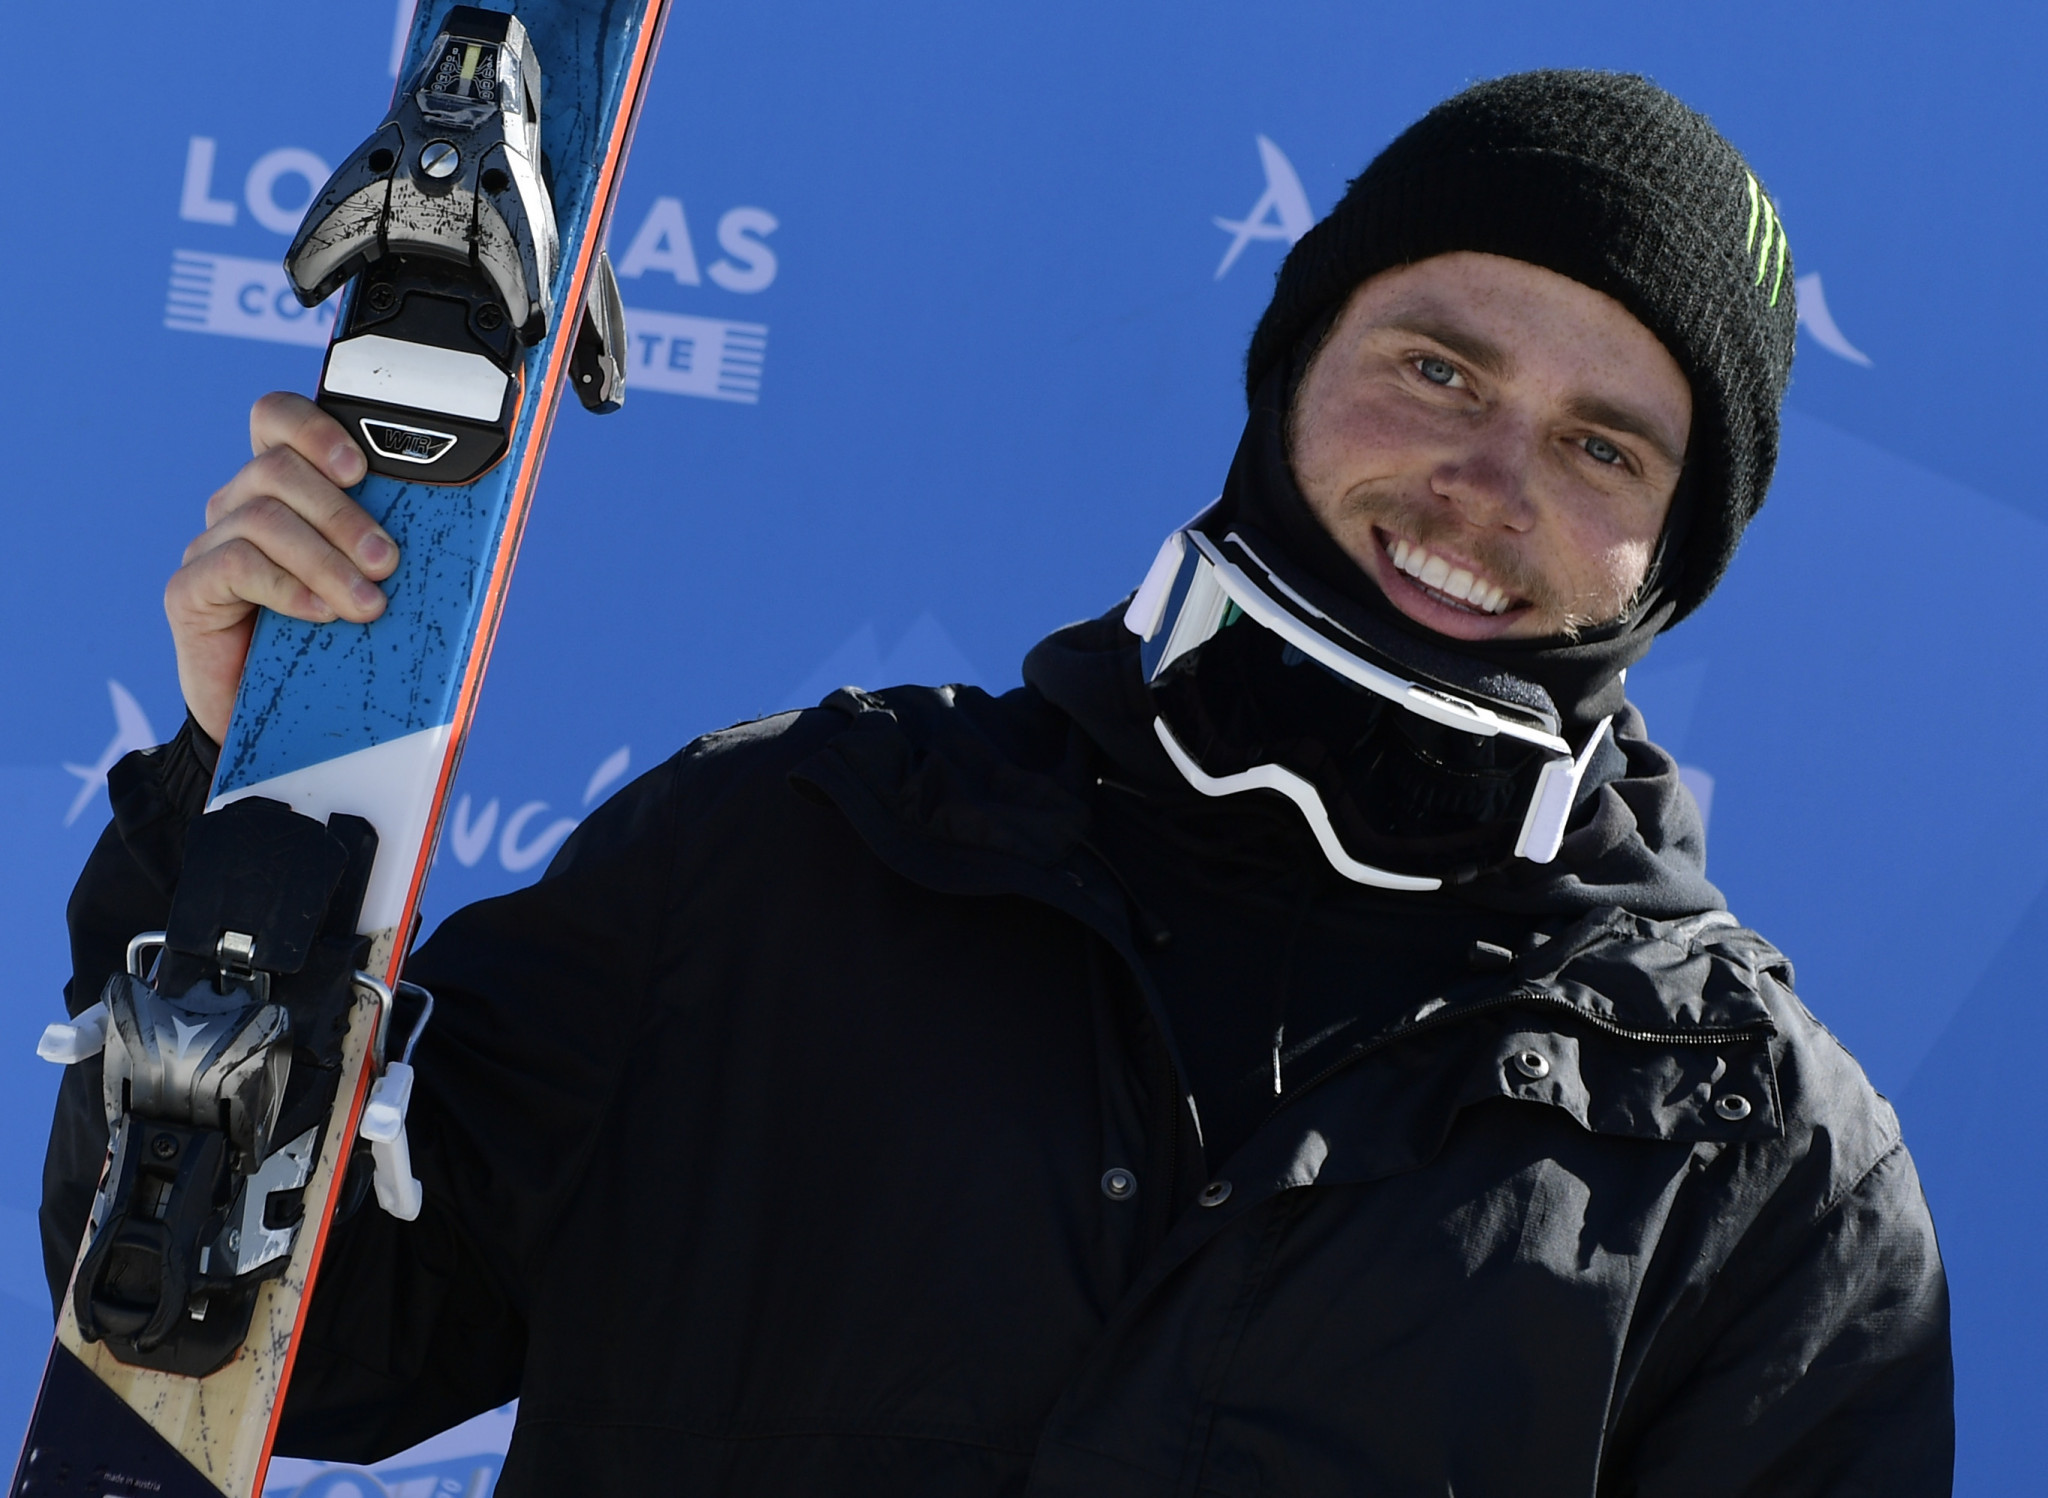 Sochi 2014 silver medallist to help United States Ski and Snowboard celebrate National Coming Out Day